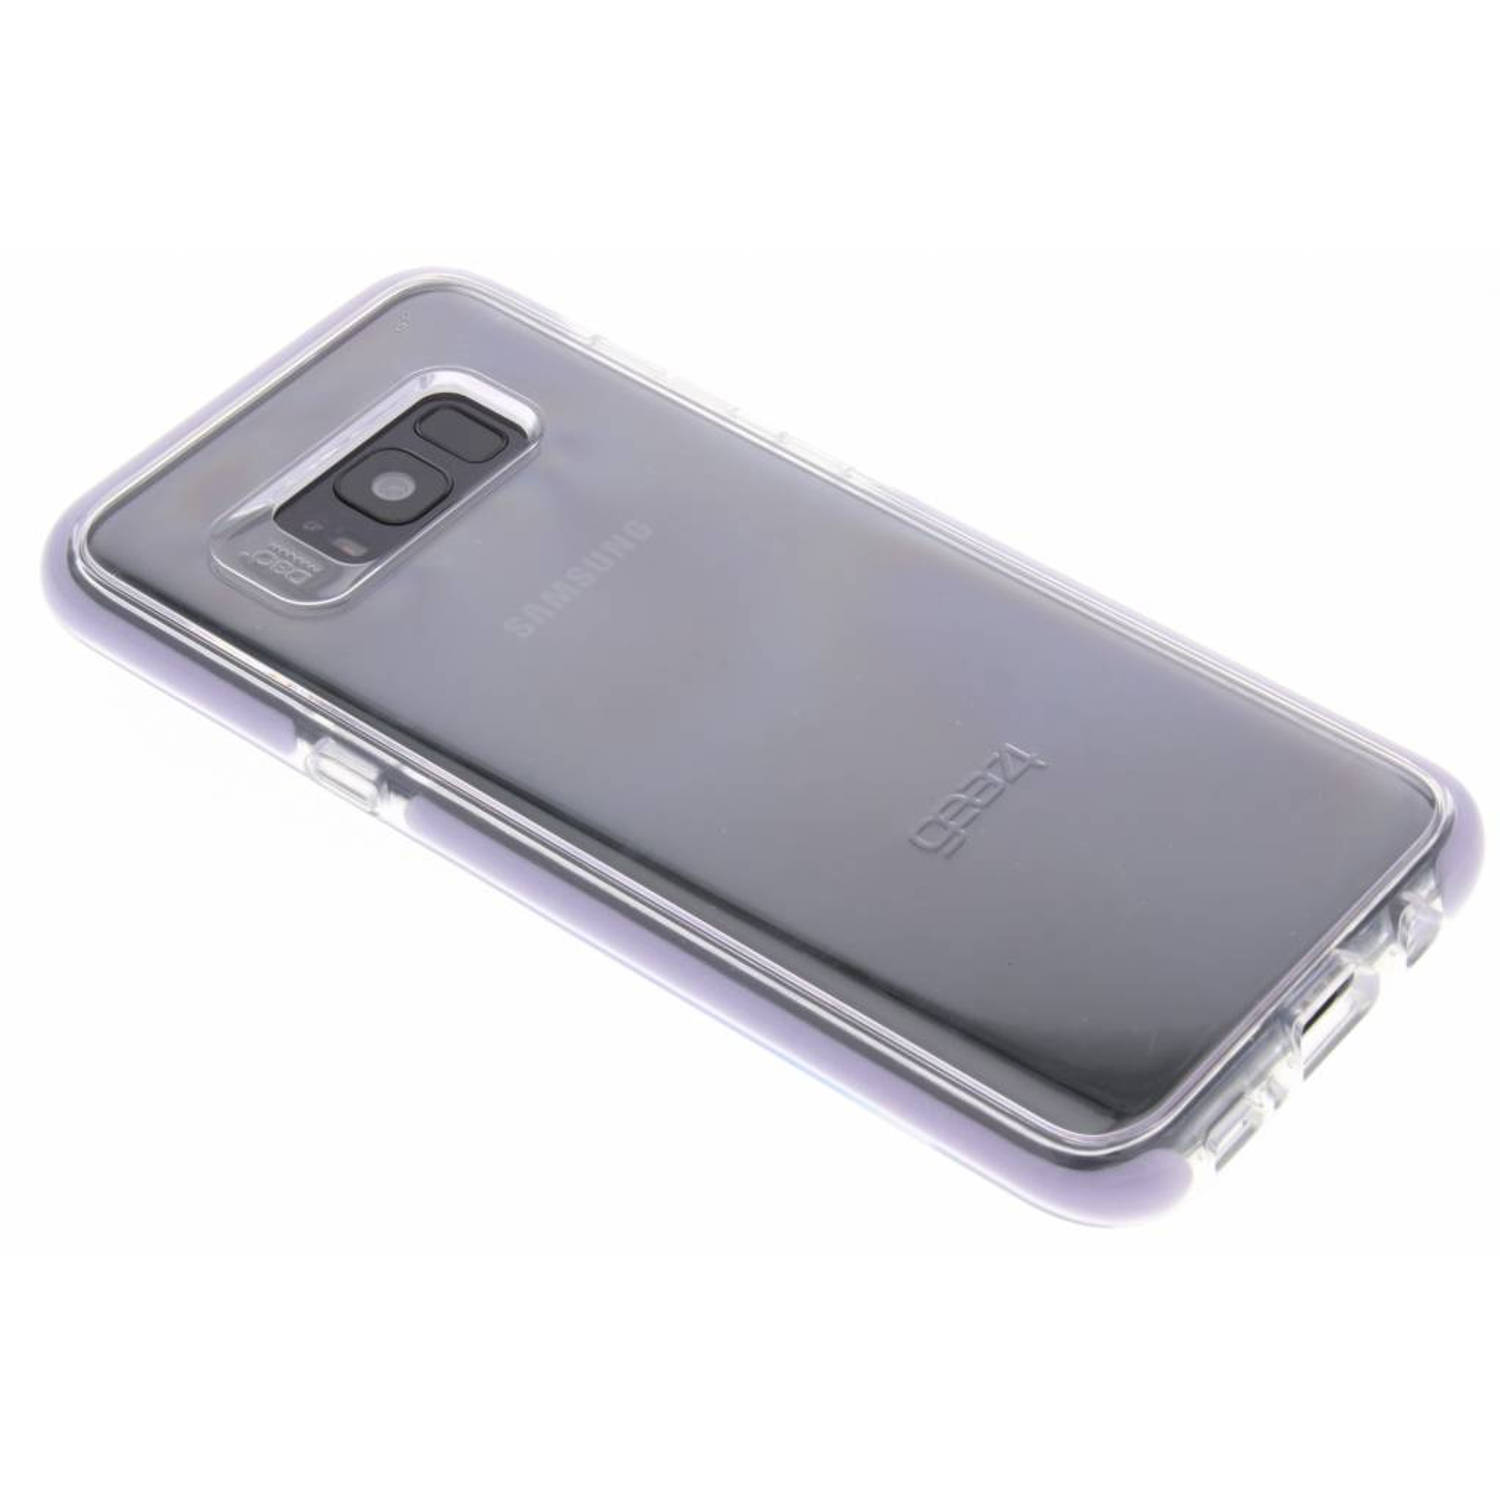 Paarse D3O Piccadilly Case voor de Samsung Galaxy S8 Plus